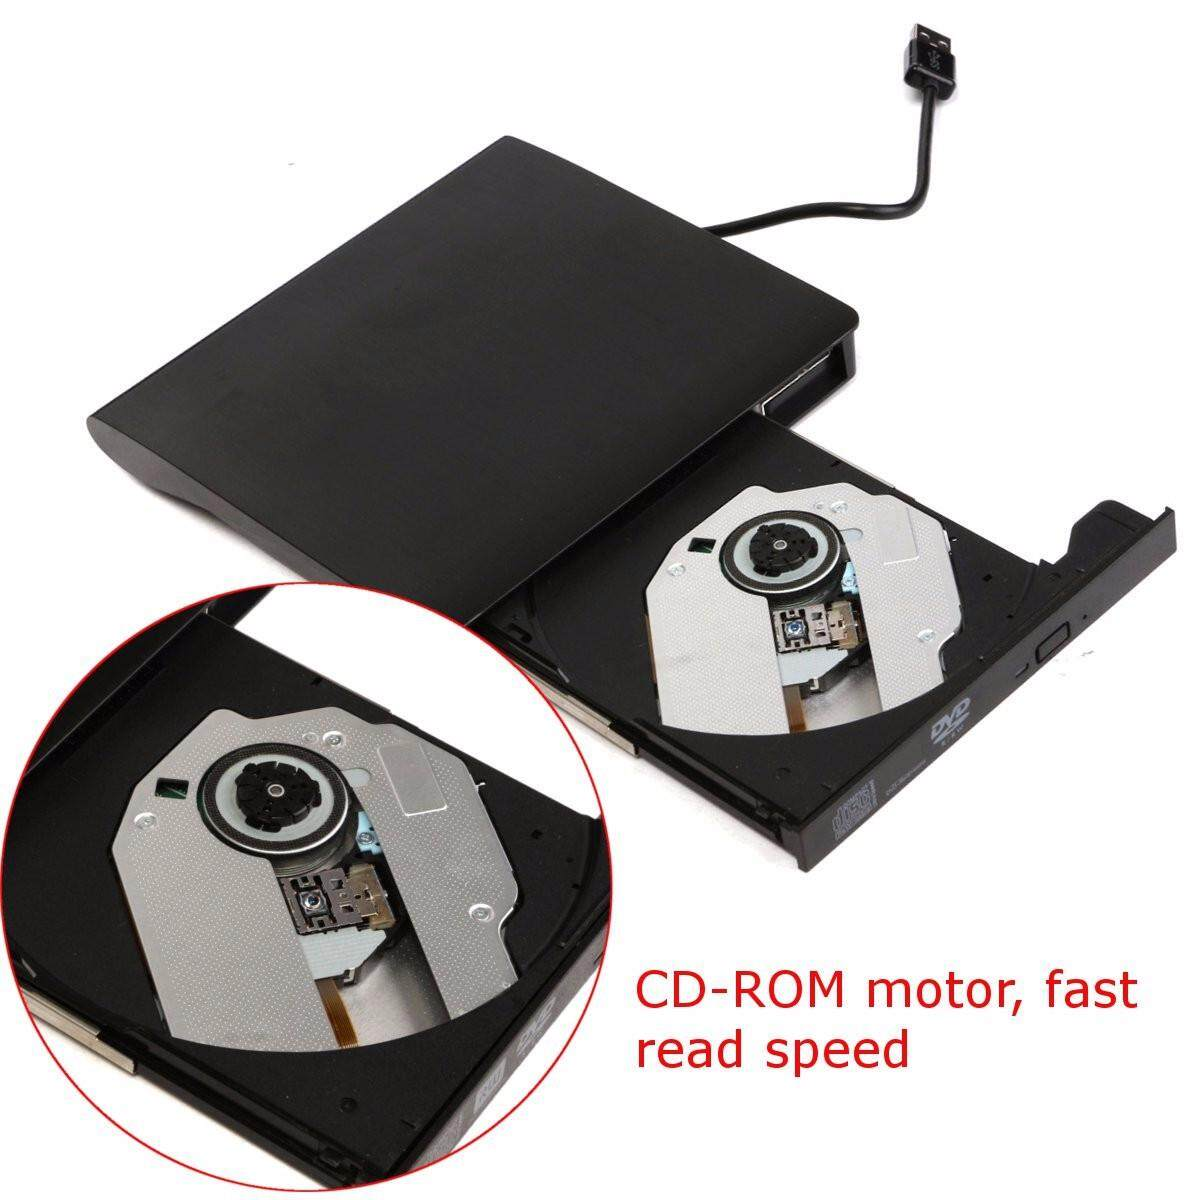 【Free Shipping + Flash Deal】External USB3.0 DVD/CD RW Drive Reader Writer Burner For Notebook Laptop PC